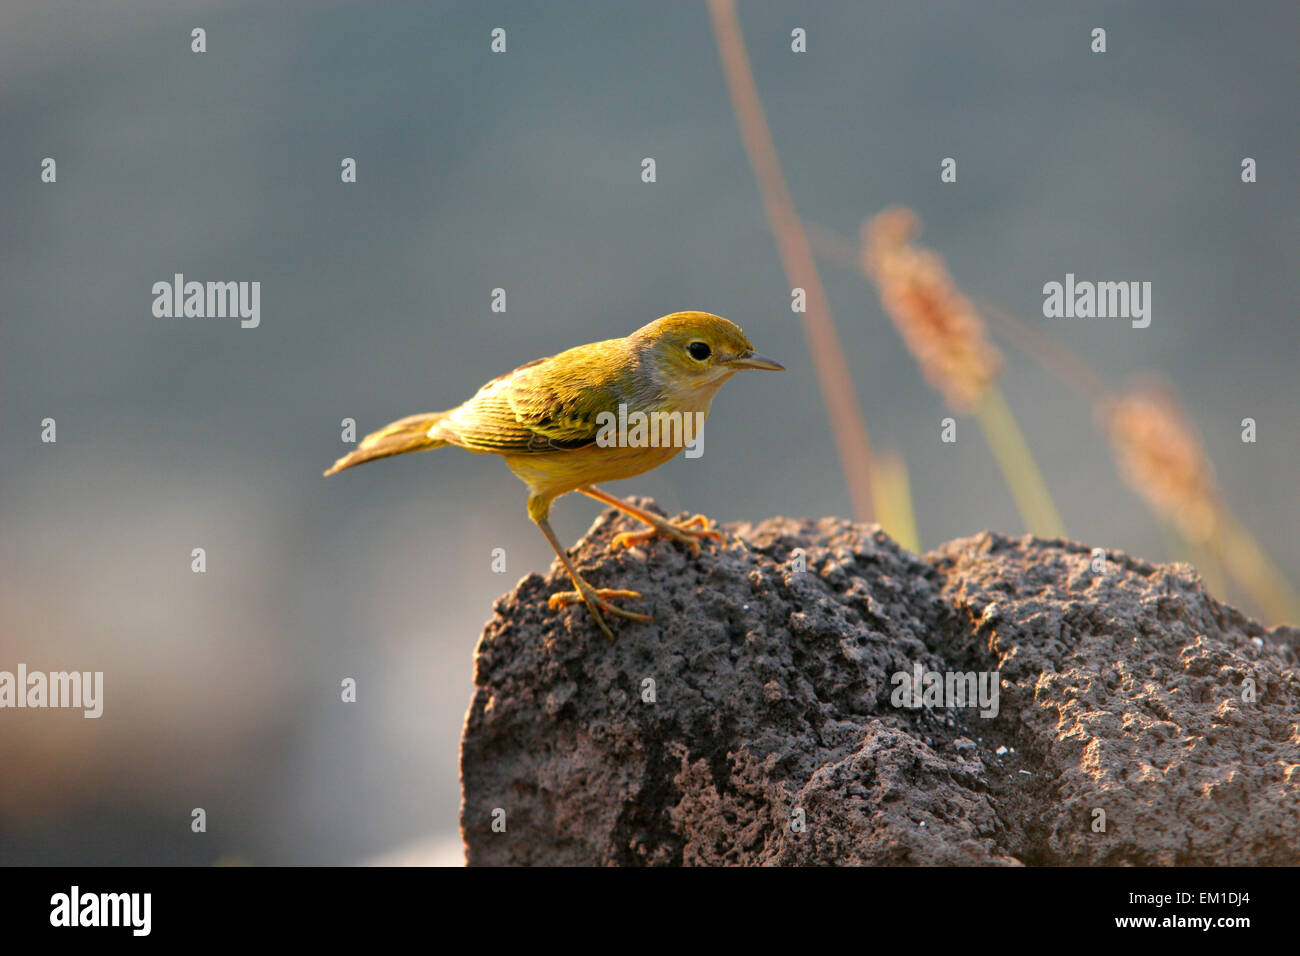 Galapagos Darwin finch bird, Galapagos Islands, Ecuador, South America - Stock Image